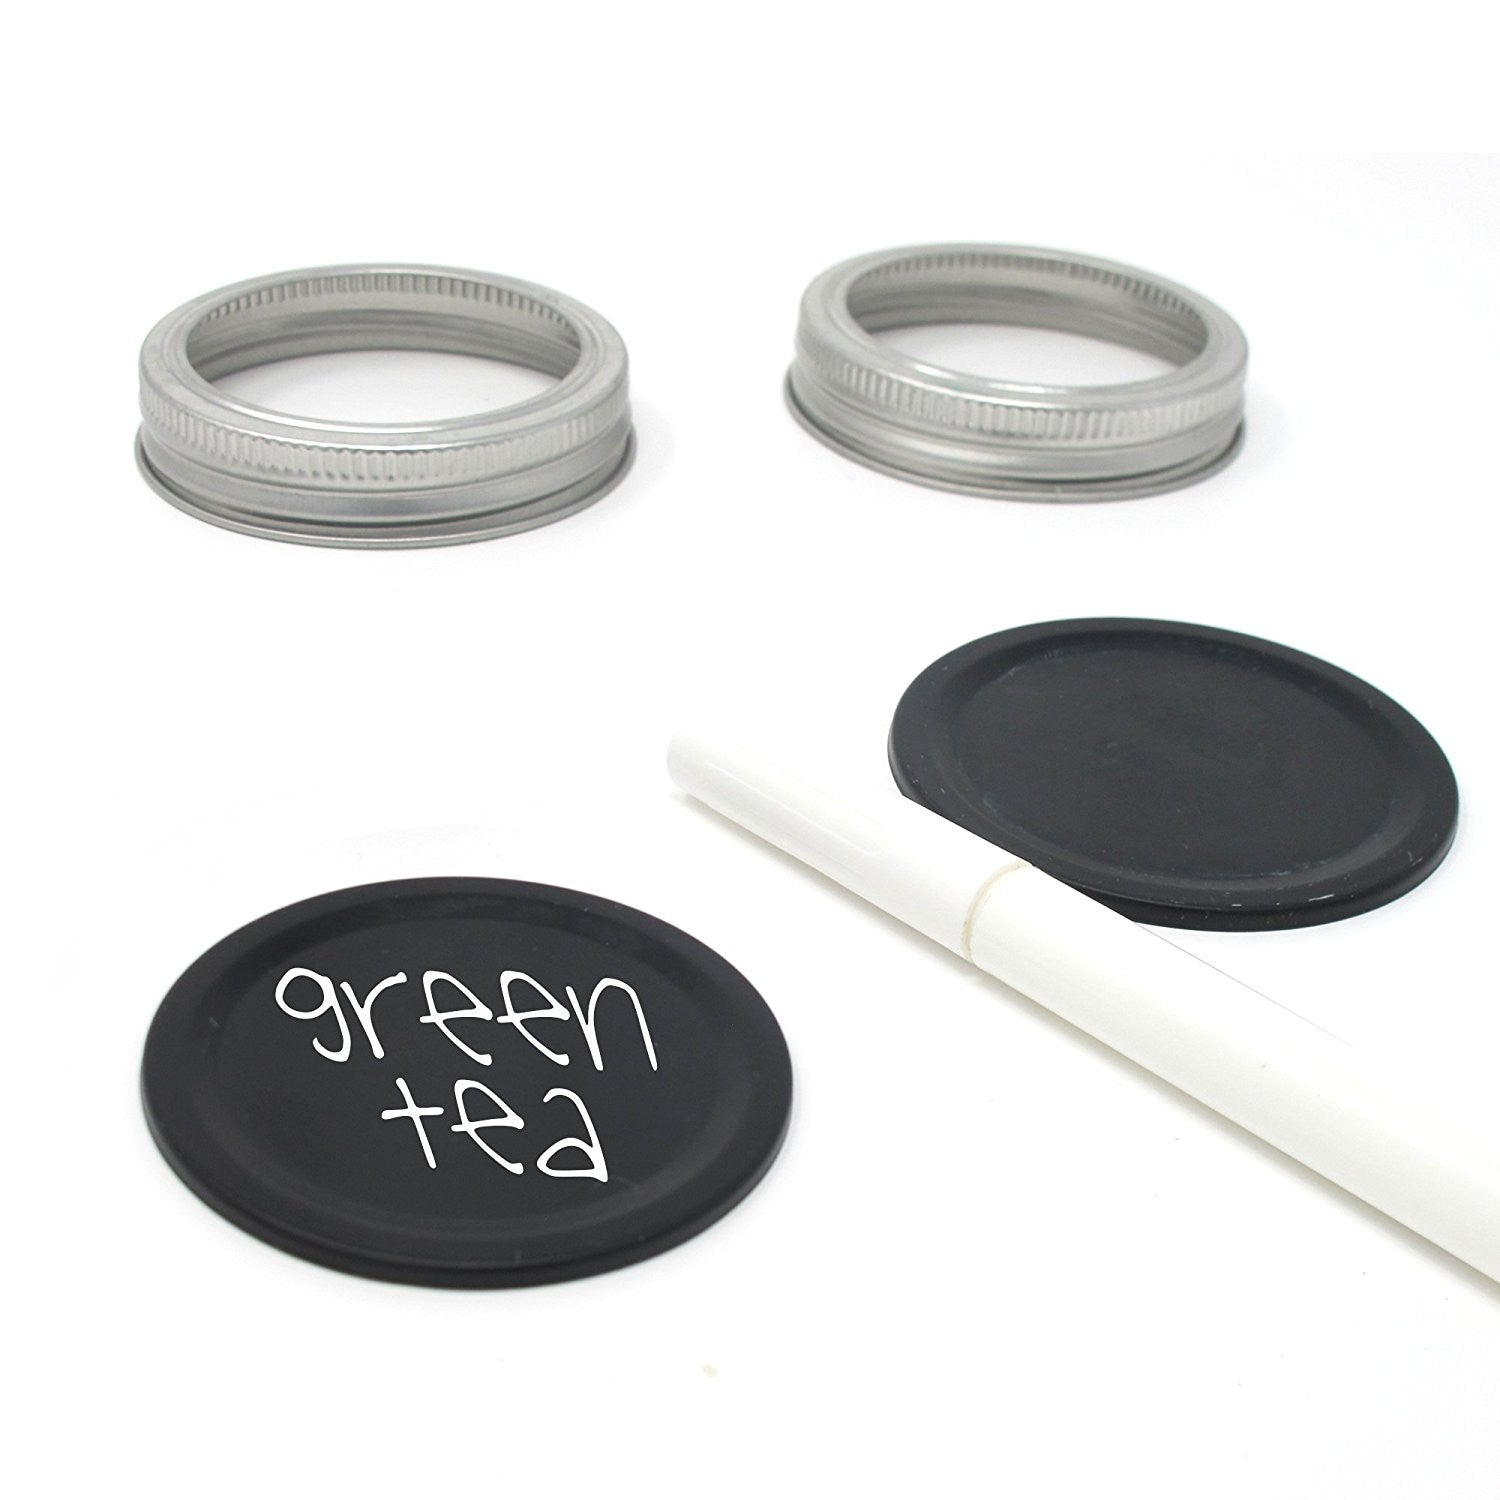 10 x Smiths Chalkboard Mason Jar Lids, reversible lids & reusable with Magic White Pen (Standard Size Mason Jars)